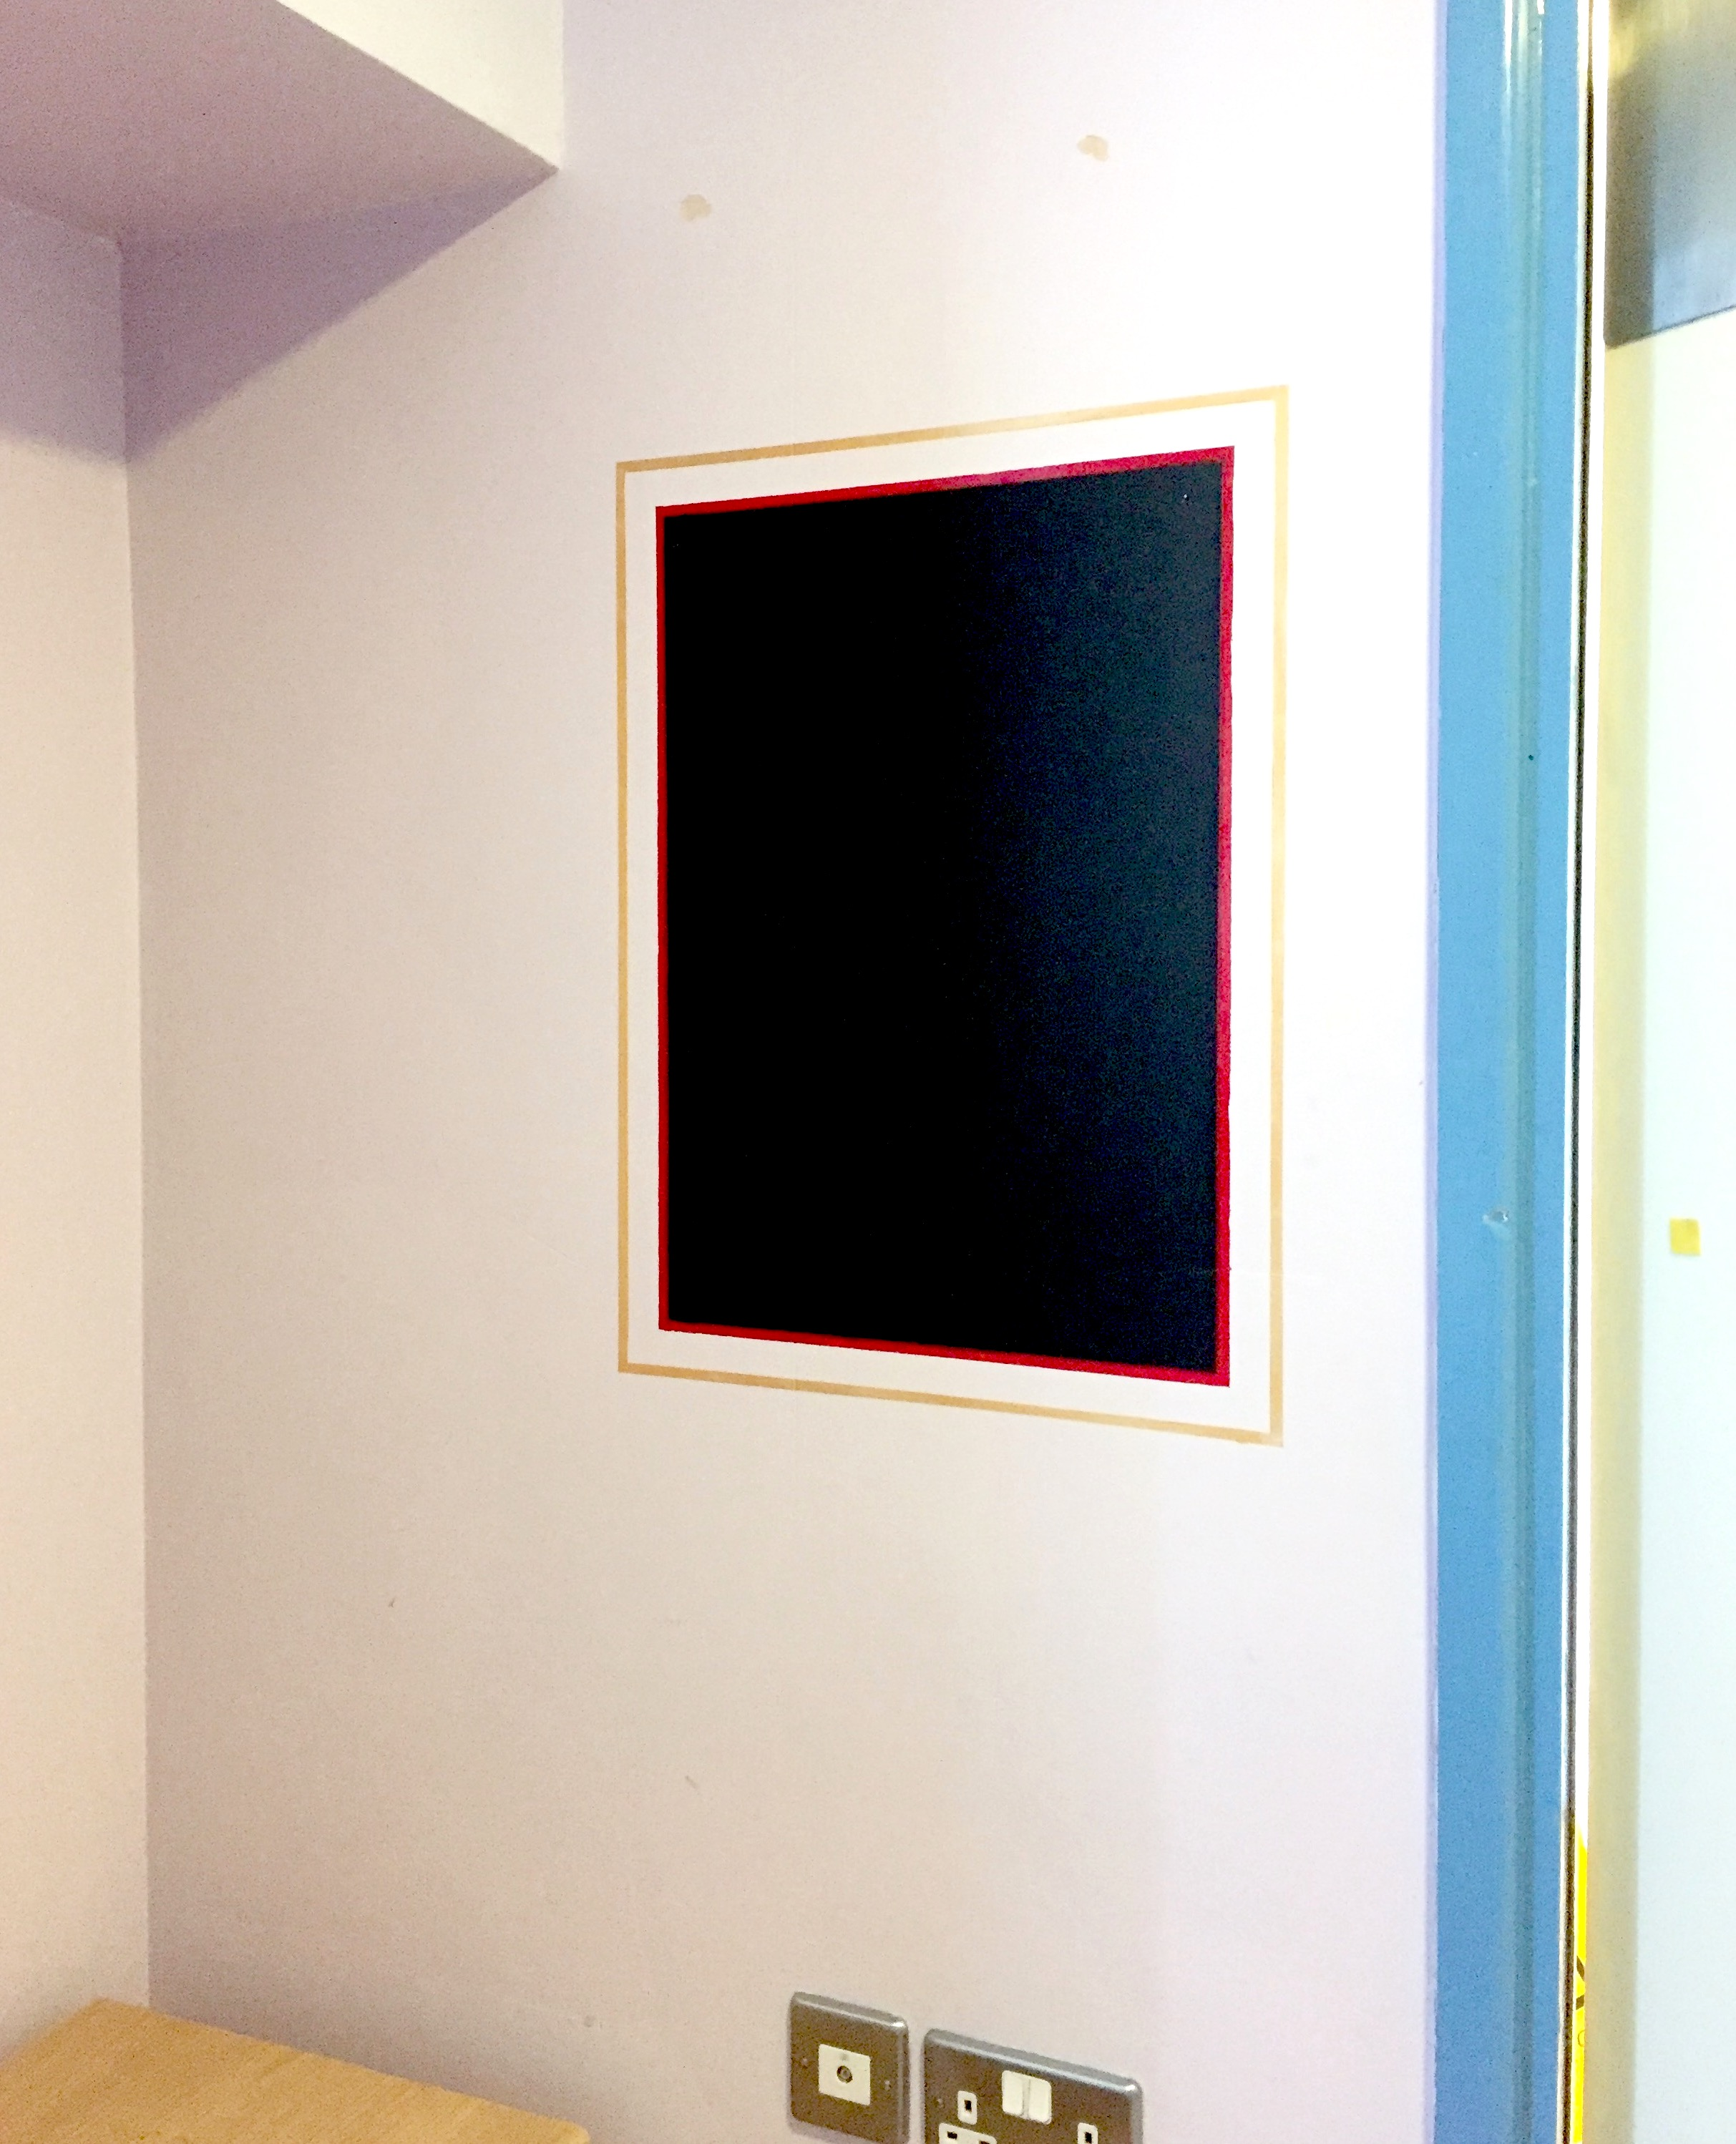 - This simple intervention acts as an encouragement to the young people to explore their own artistic identity, and offers a private space to vent thoughts and feelings. In the otherwise neutral uniformity of the hospital bedroom, designed predominantly with clinical needs and risk reduction in mind, which patients have limited freedom to personalise, the blackboards provide a means for individuals to take ownership of the space and mark it as their own for the duration of their treatment.We believe that within the restrictive enclosed setting of an inpatient unit opportunities for free creative self-expression are crucial,providing a means to help one manage the challenges of living in such environment and potentially playing a key role in the process of healing and recovery.